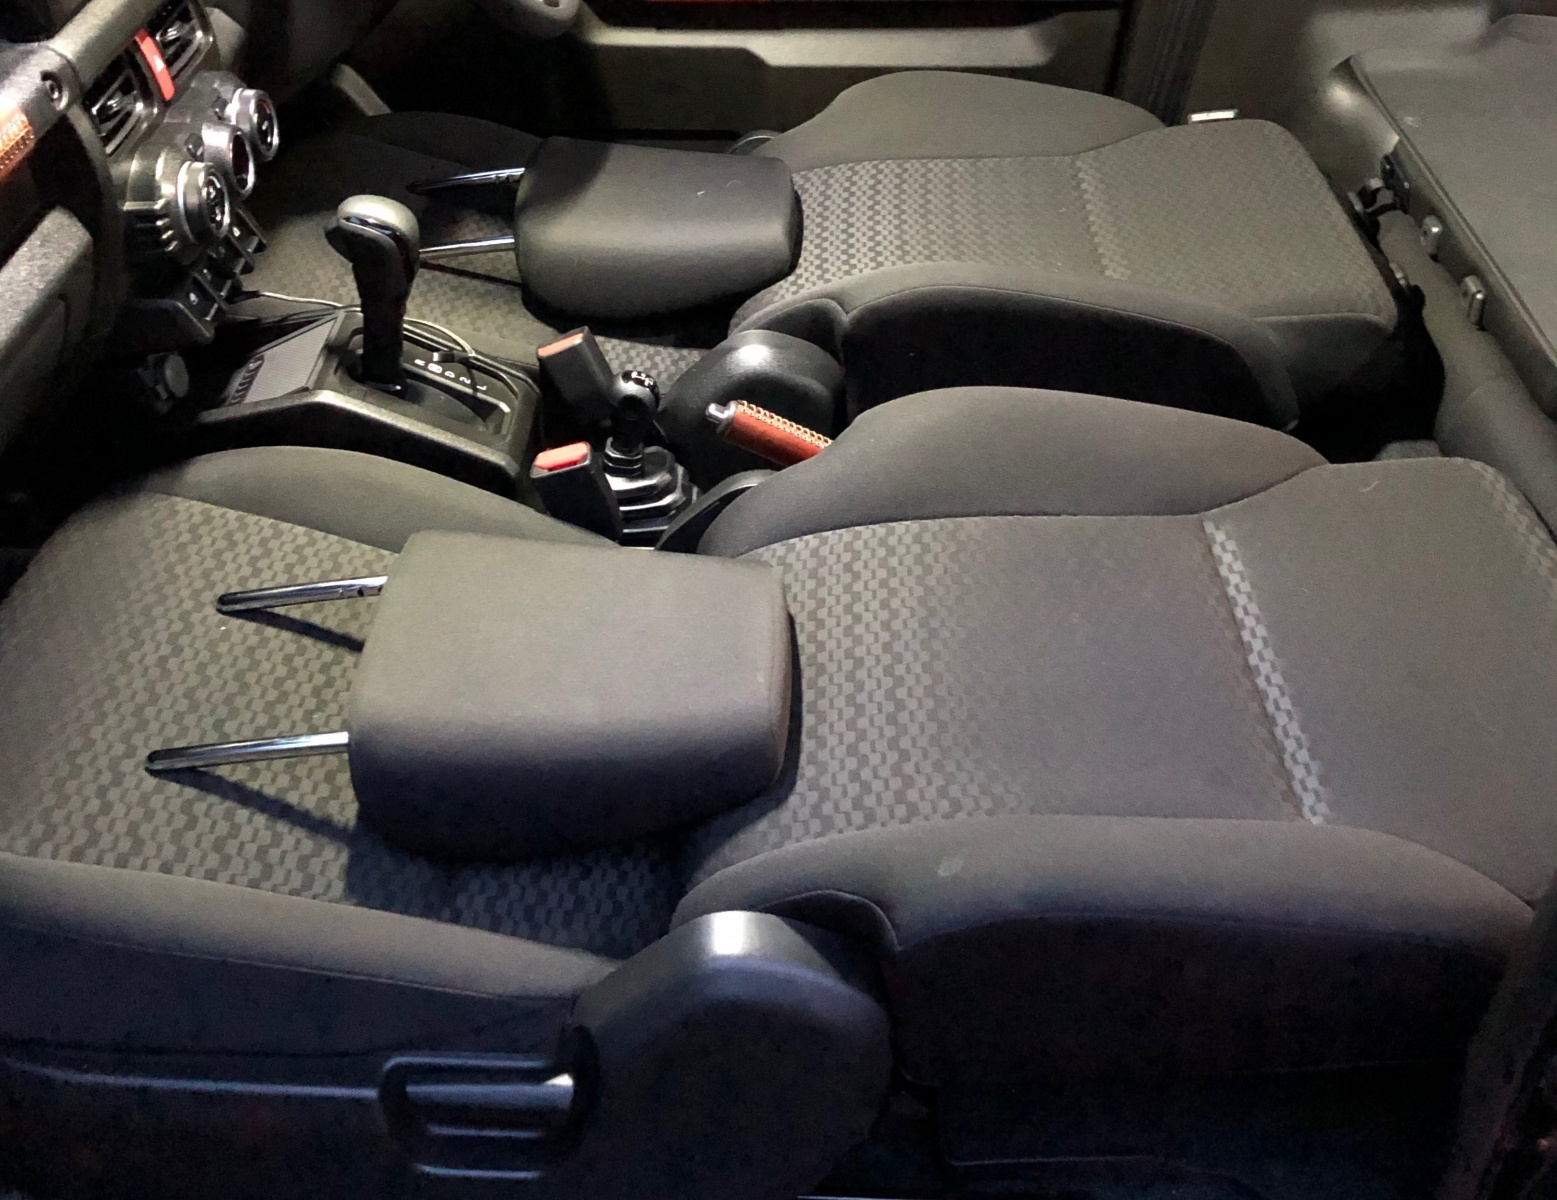 Optional placement of front headrests